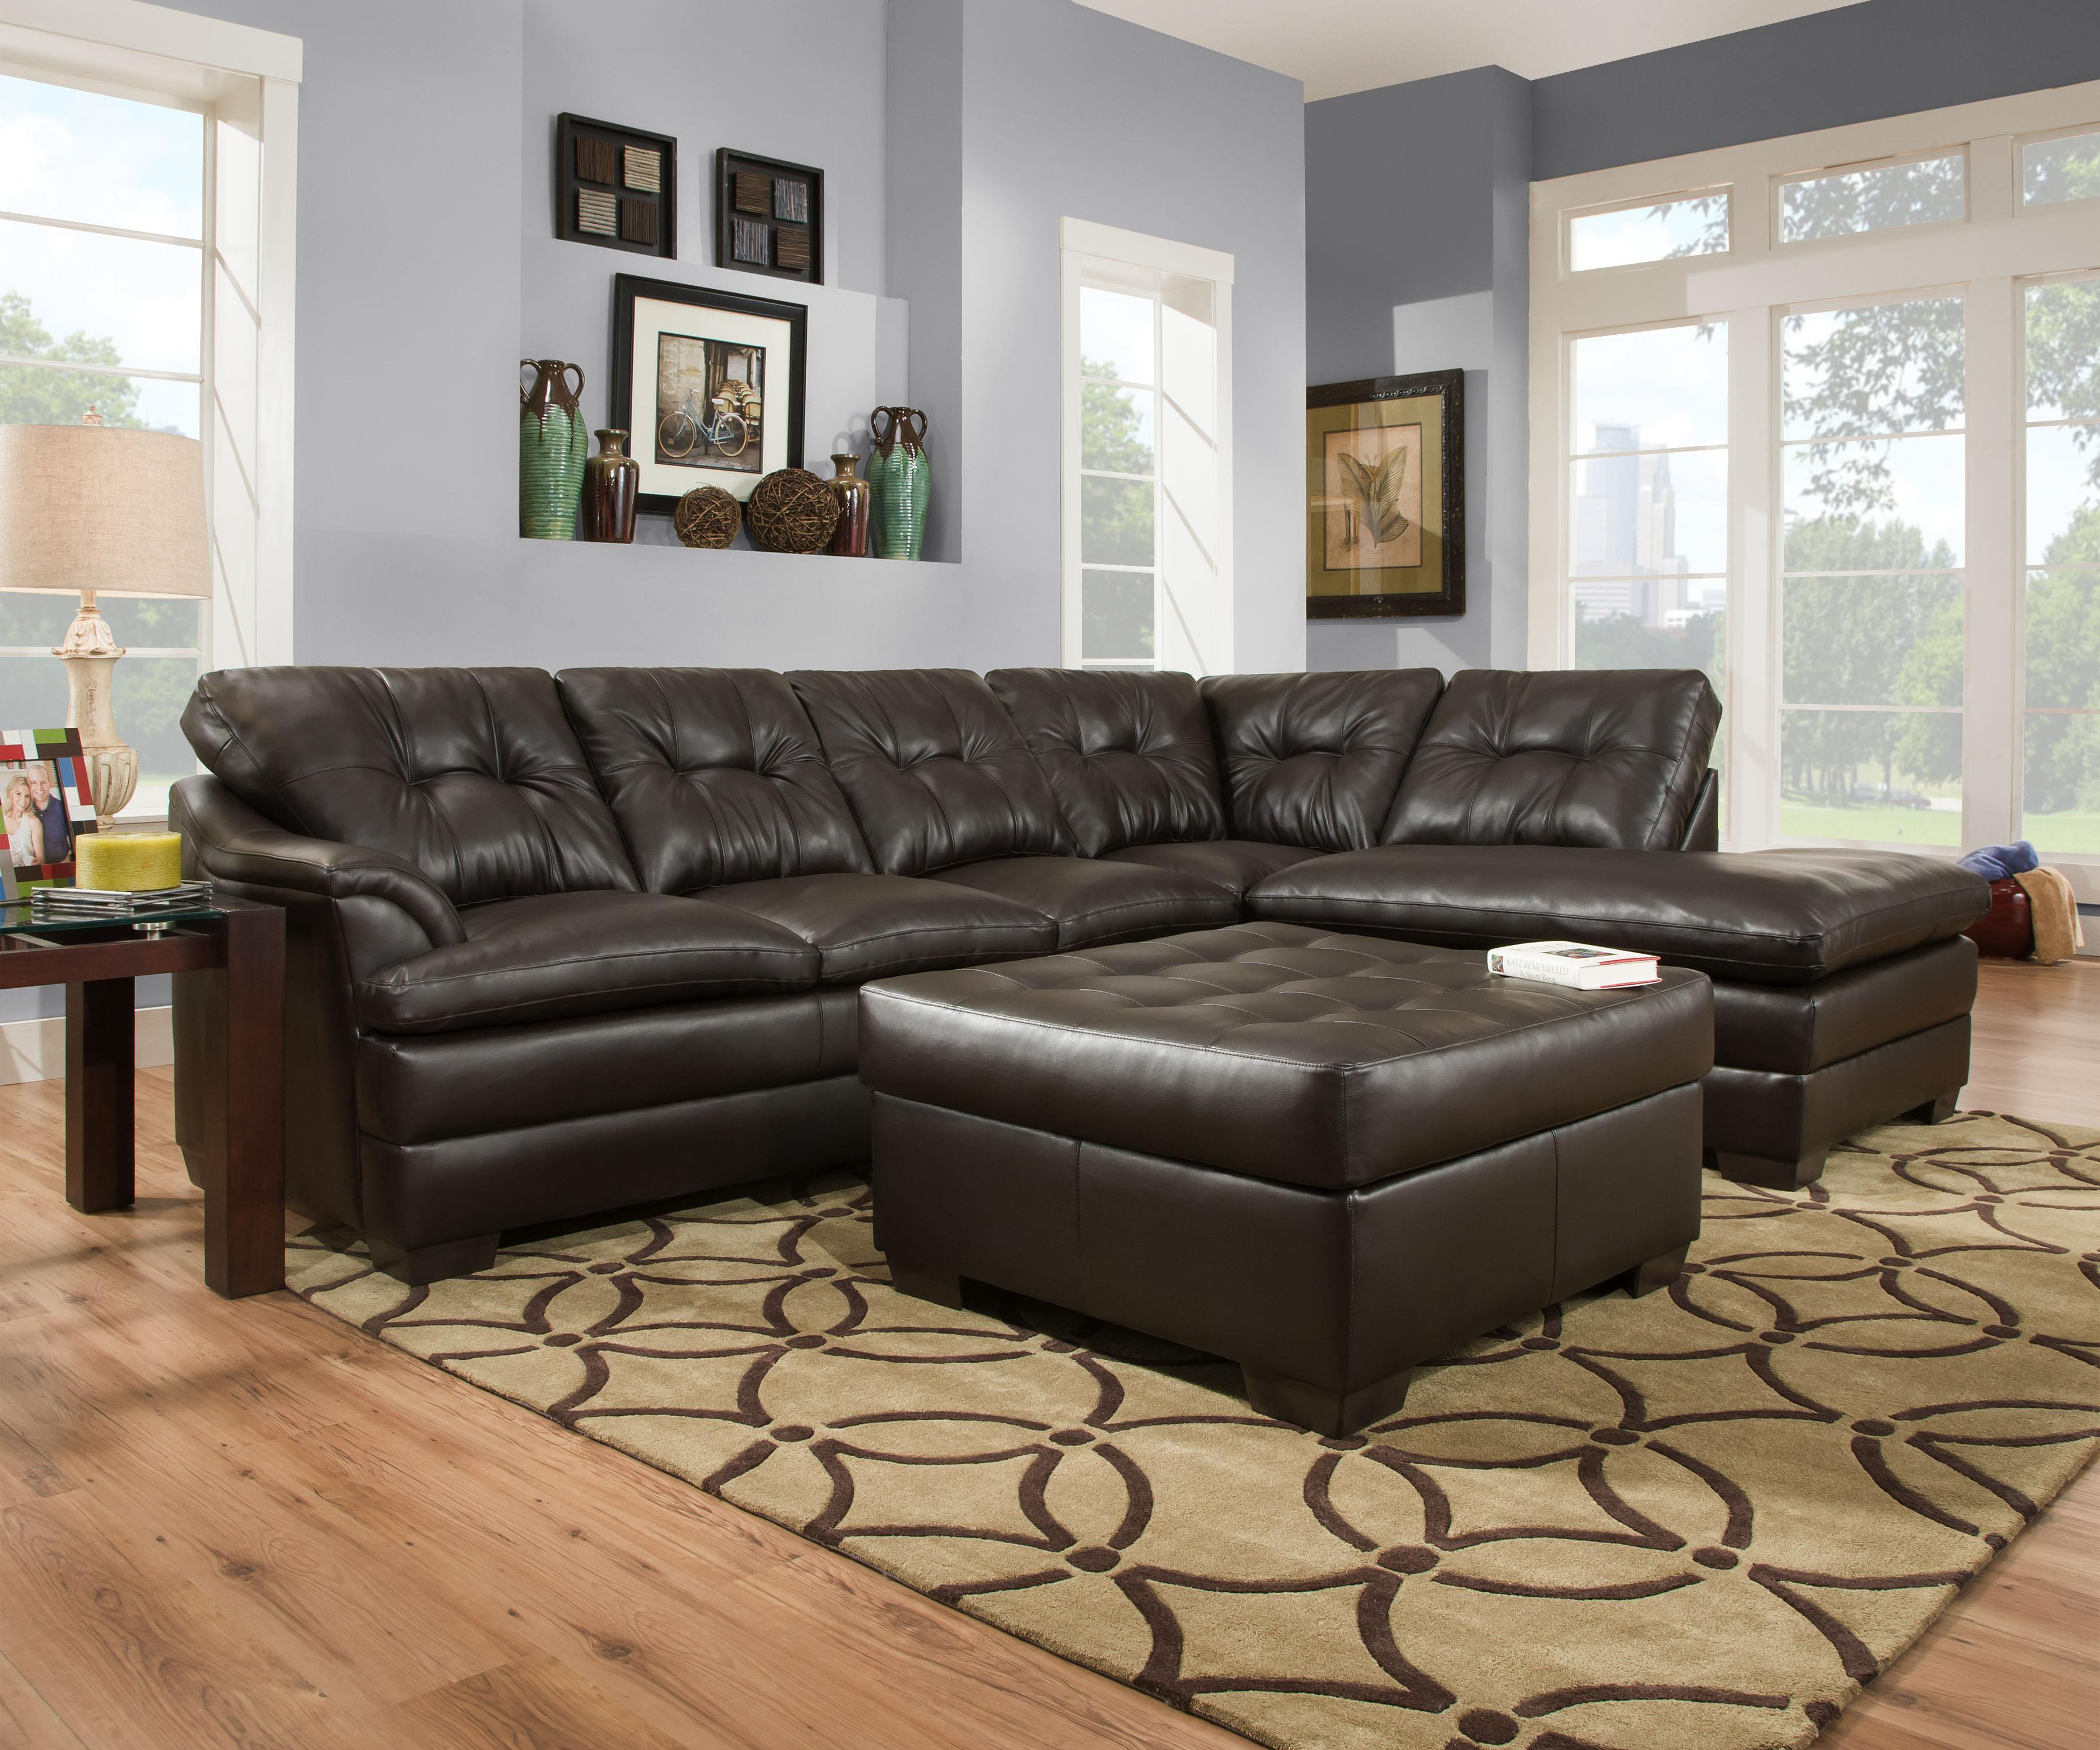 Simmons Upholstery 5122 Transitional Sectional Sofa with Tufted Back - Dunk  u0026 Bright Furniture - Sectional Sofas